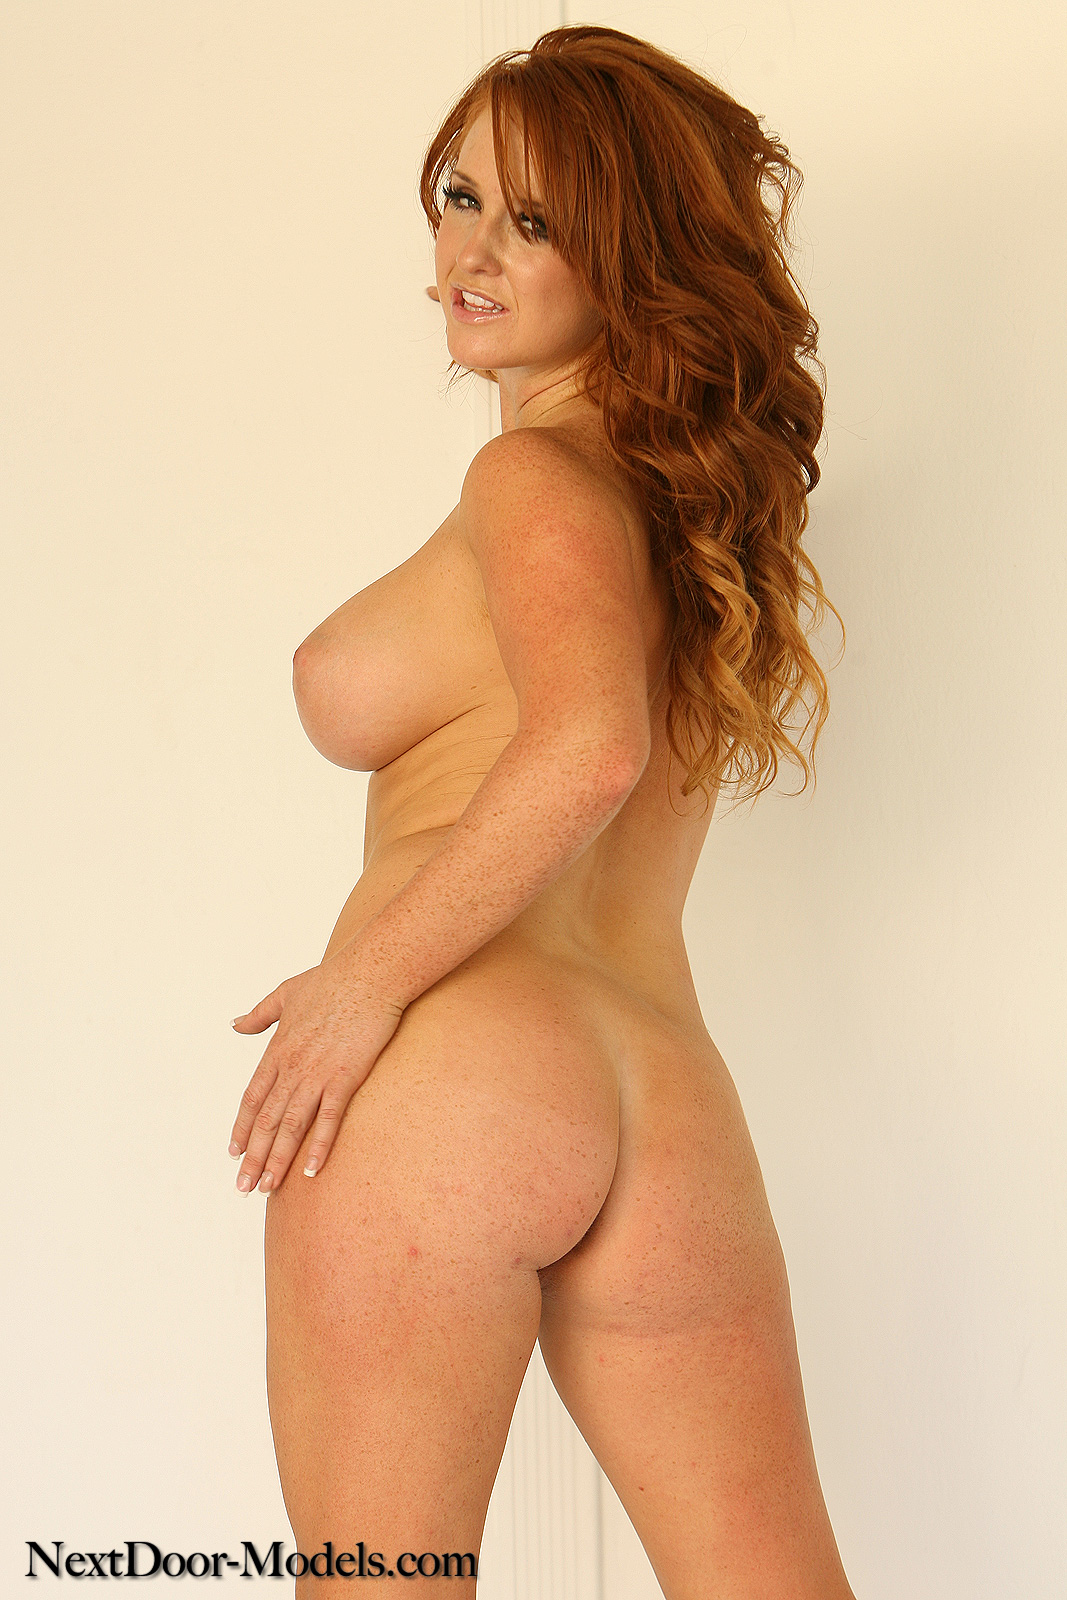 Join. sexy hot redheads nude agree, amusing